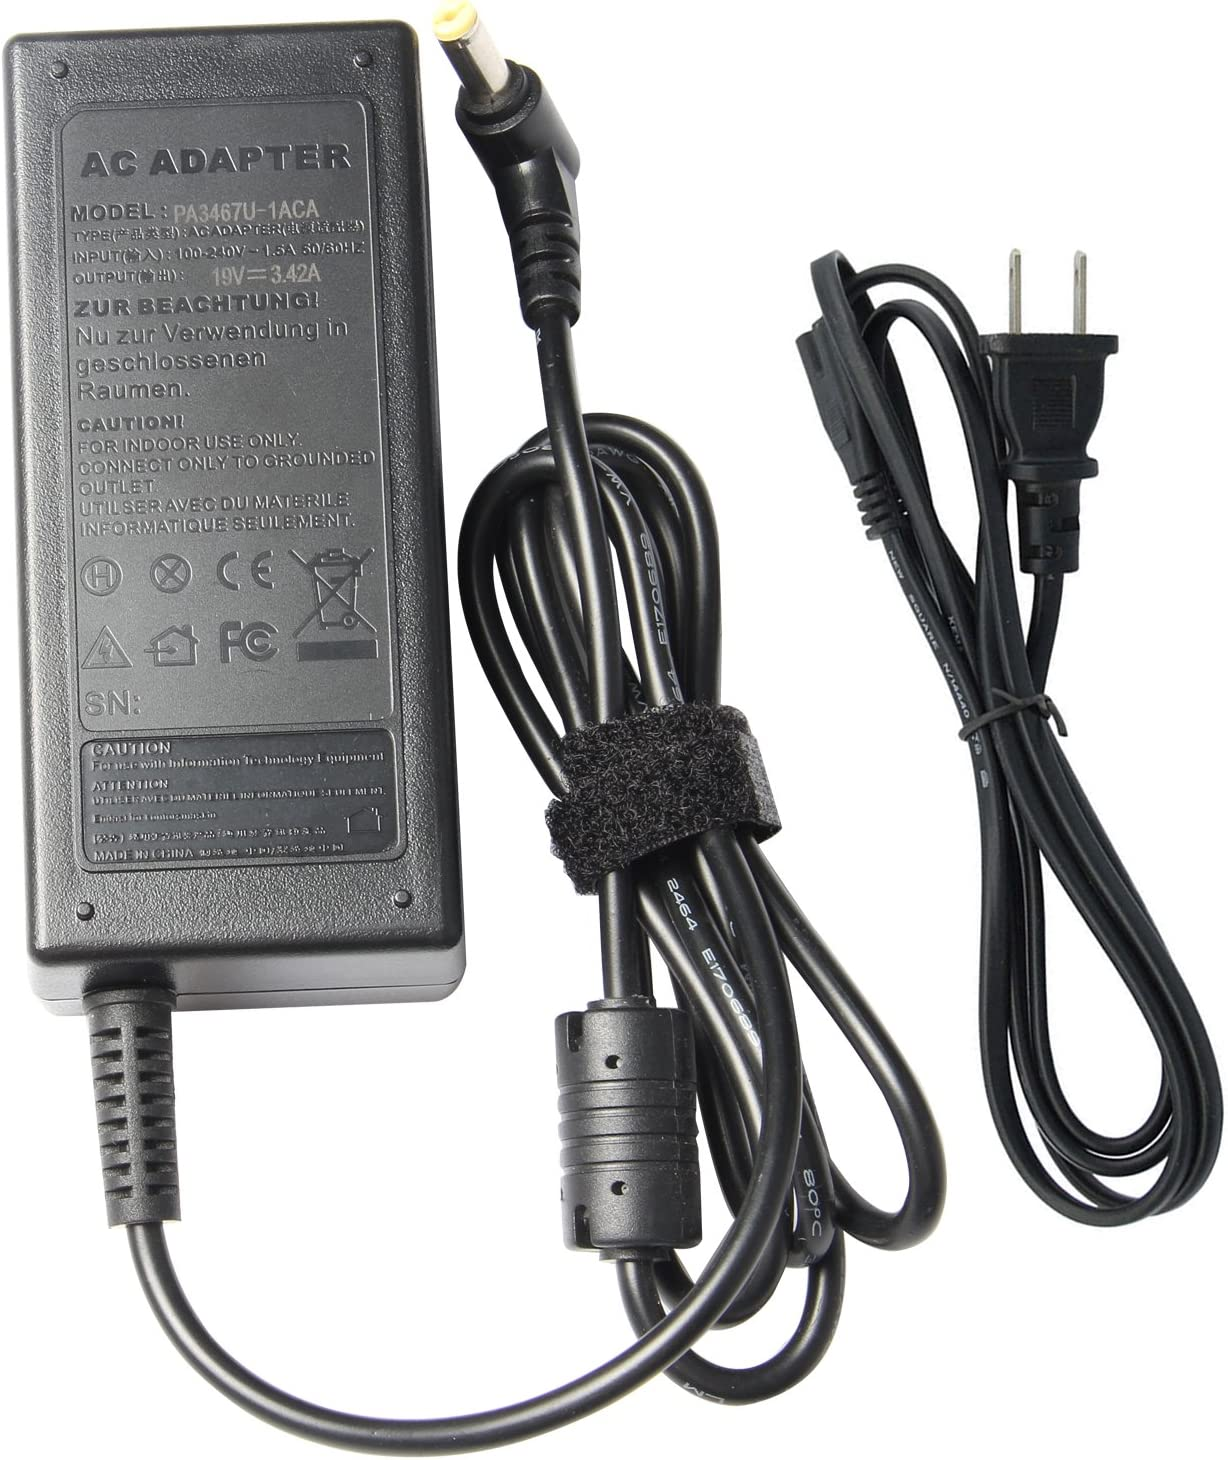 Futurebatt 65W AC Adapter Charger for Gateway NV52 NV53 NV53A NV54 NV55C NV57H NV570P NV59 NV59C NV73 NV76R NV78 NV79 NE522 NE56R NE71B NE722 LT41P LT2016U LT2802U LT4004U LT4008U Power Supply Cord